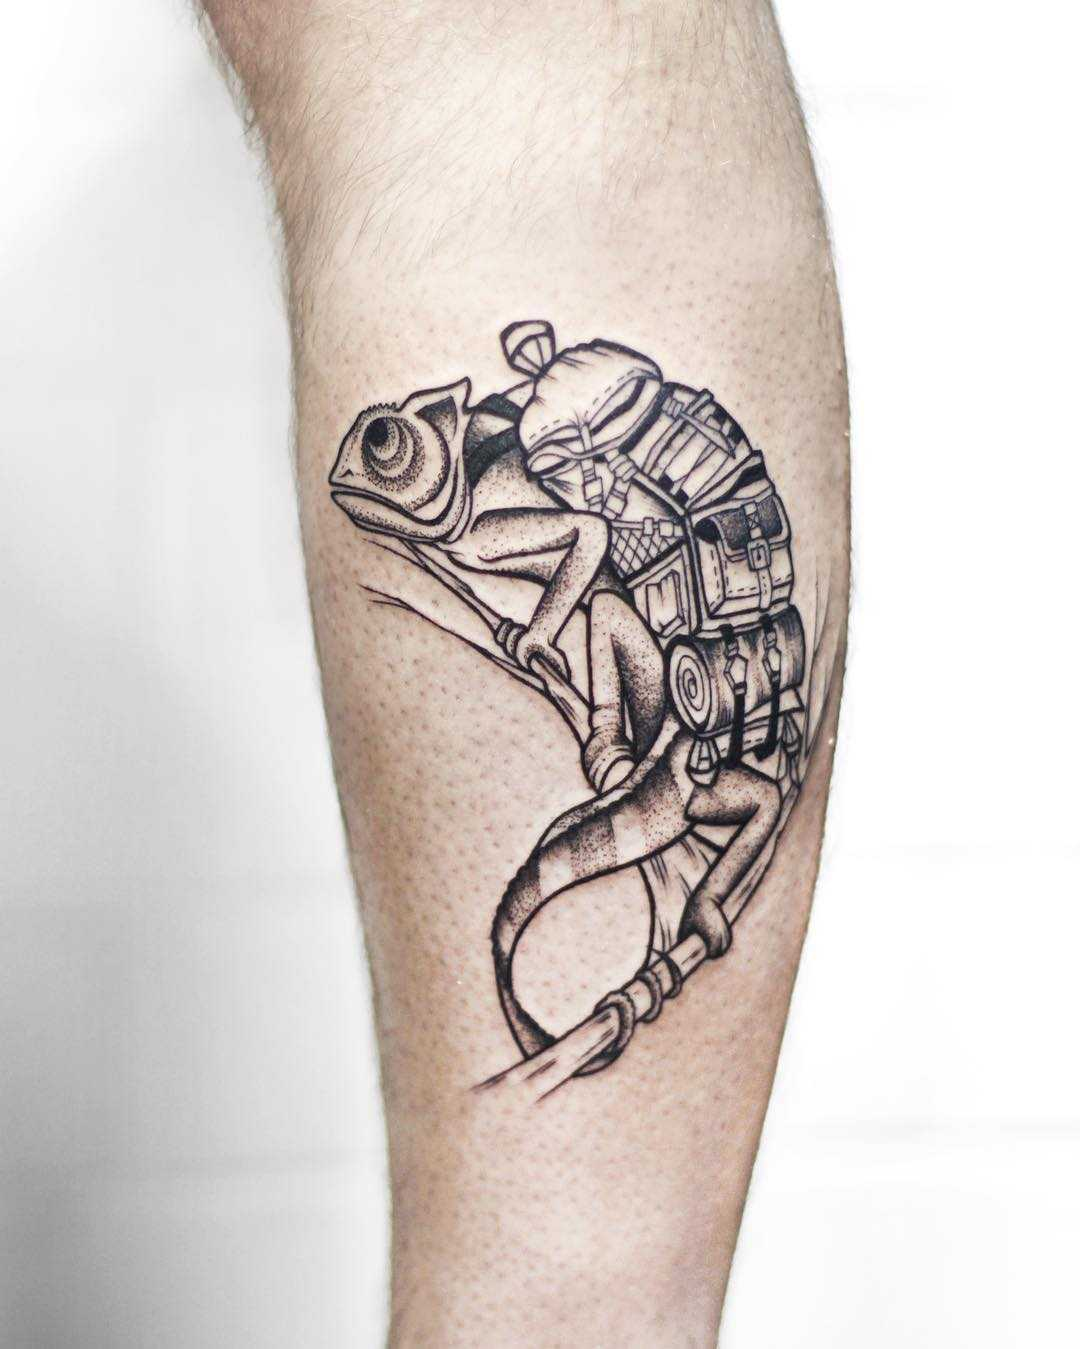 Chameleon traveler tattoo by Sasha Tattooing